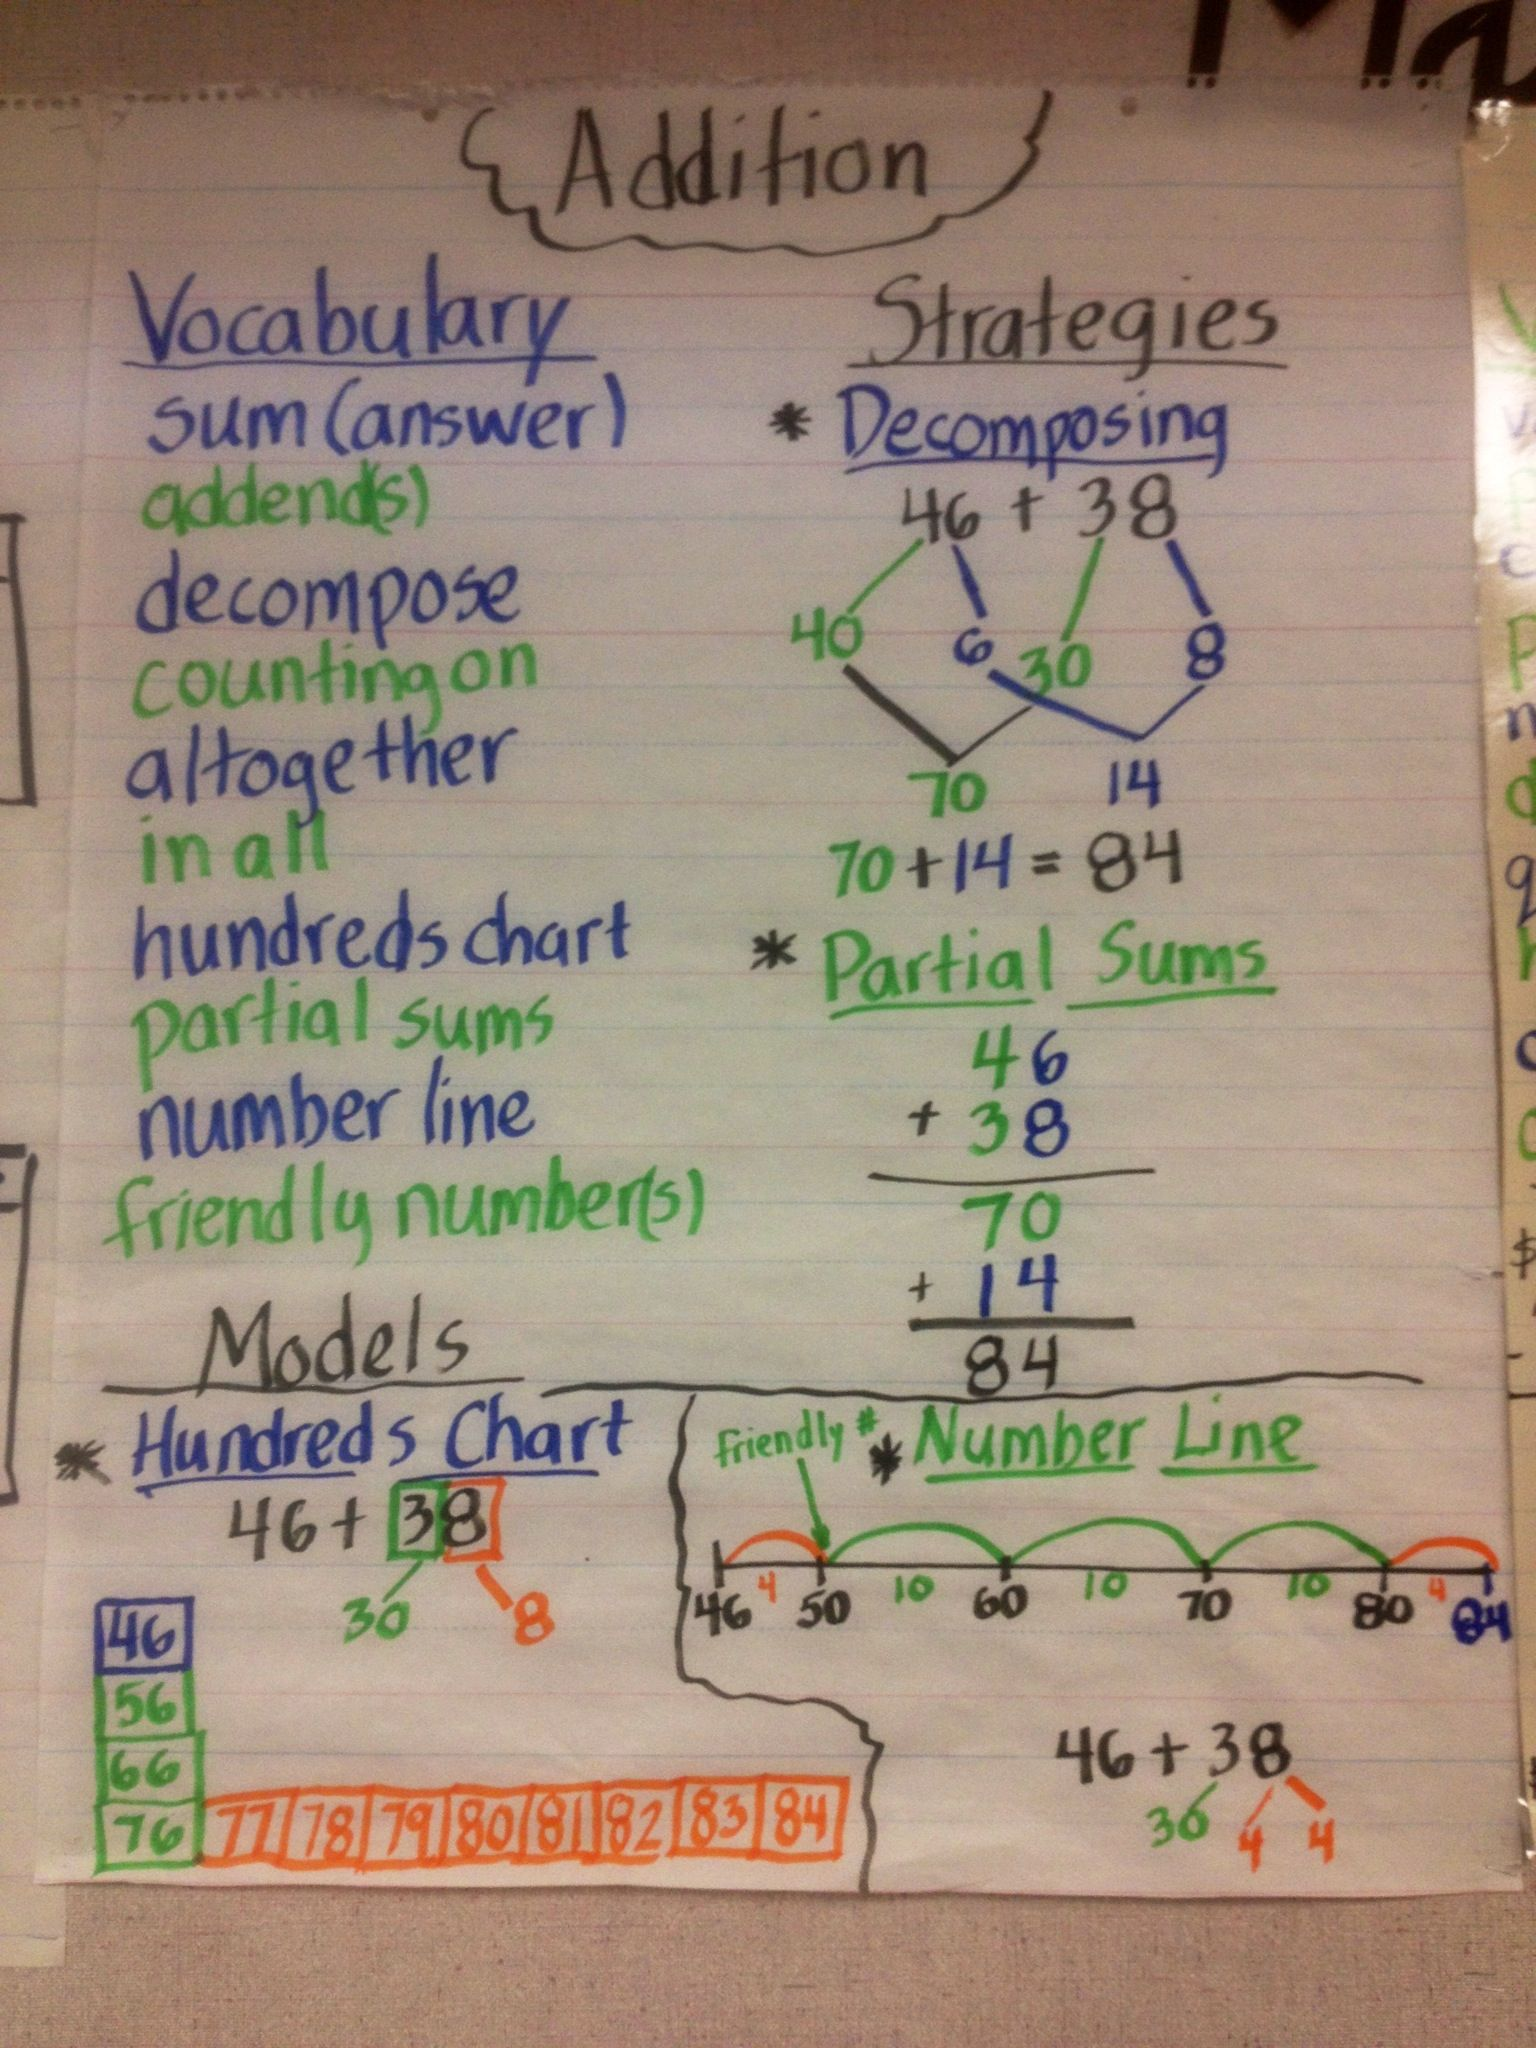 Addition Anchor Chart Vocabulary Strategies And Models